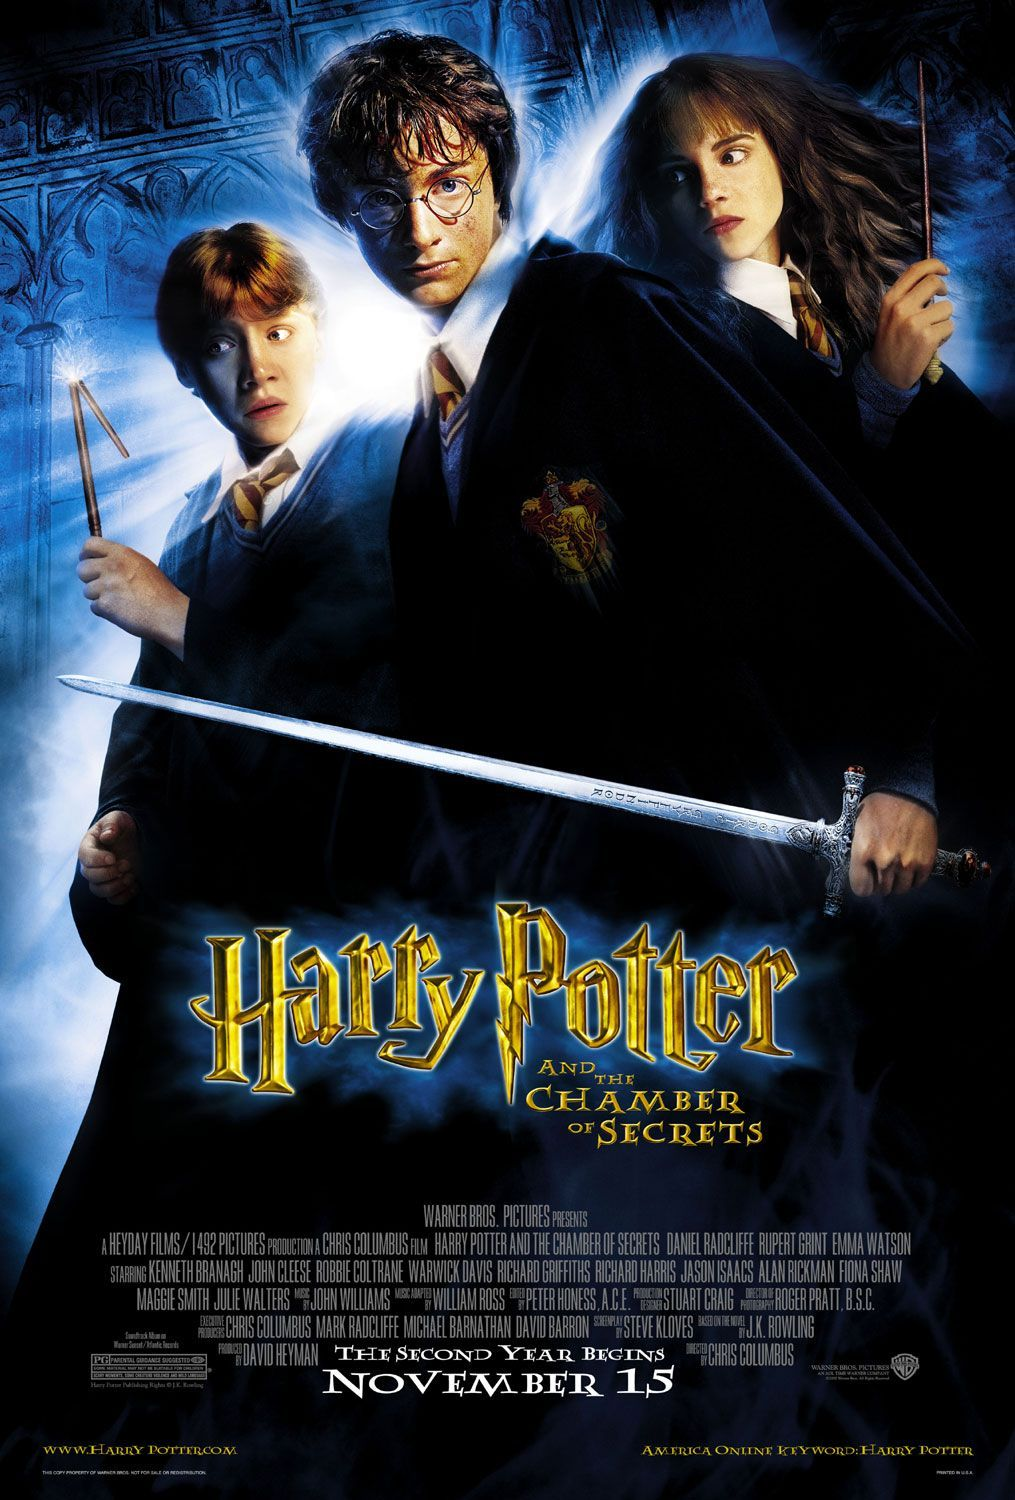 harry potter review Go back to the harry potter main page the books are listed below in reverse chronological order, with the most recently published book first click on the book jacket above to go directly to the ccbc review and other information for each title.